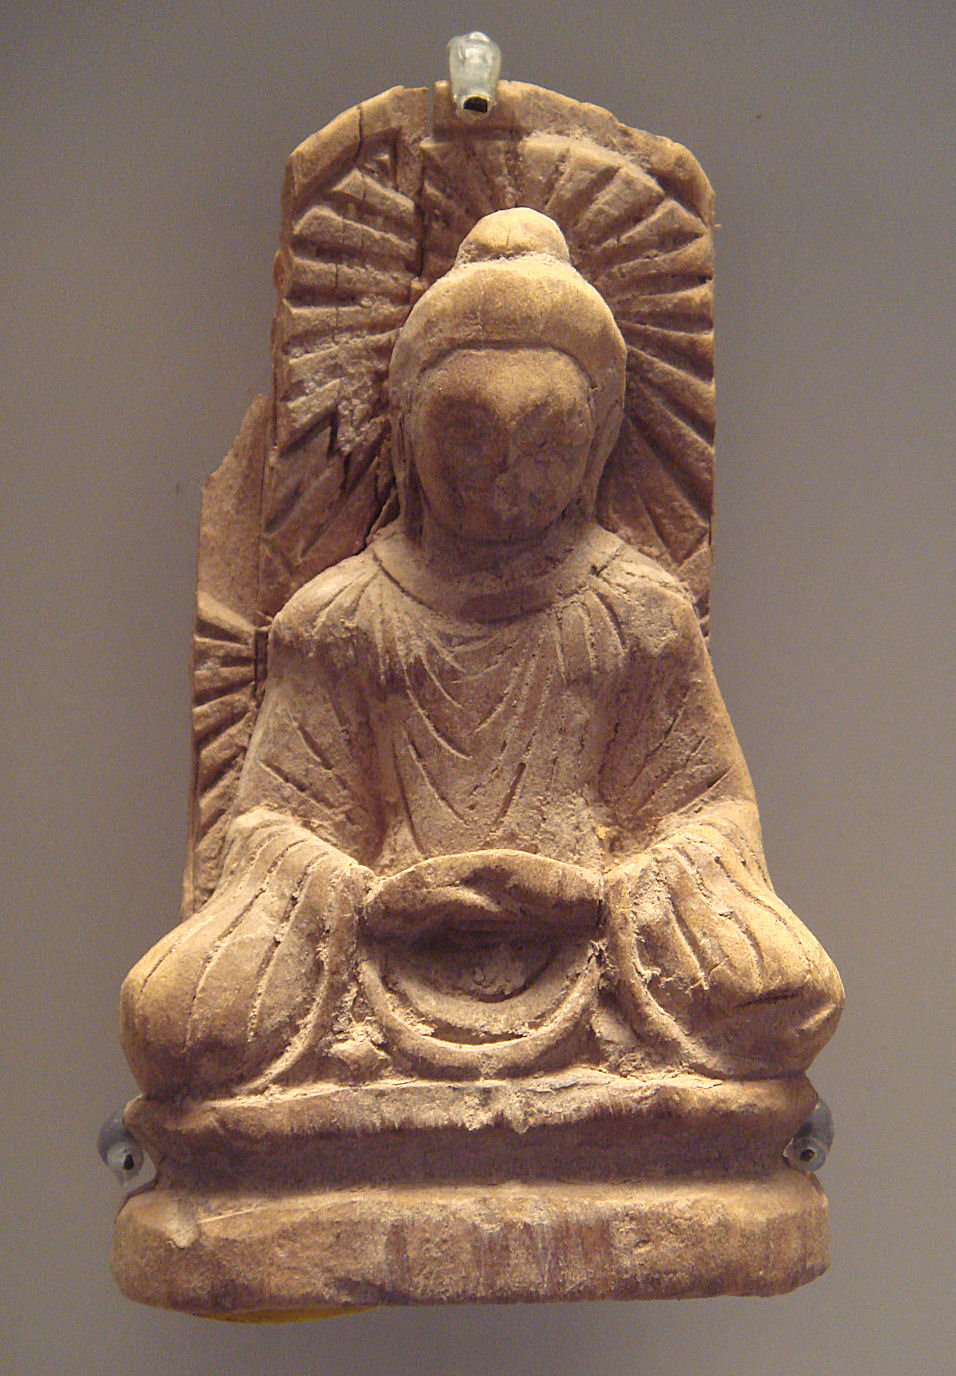 A Buddha statue from Tumshuq, Xinjiang (5th century CE). This is an example of Serindian art.